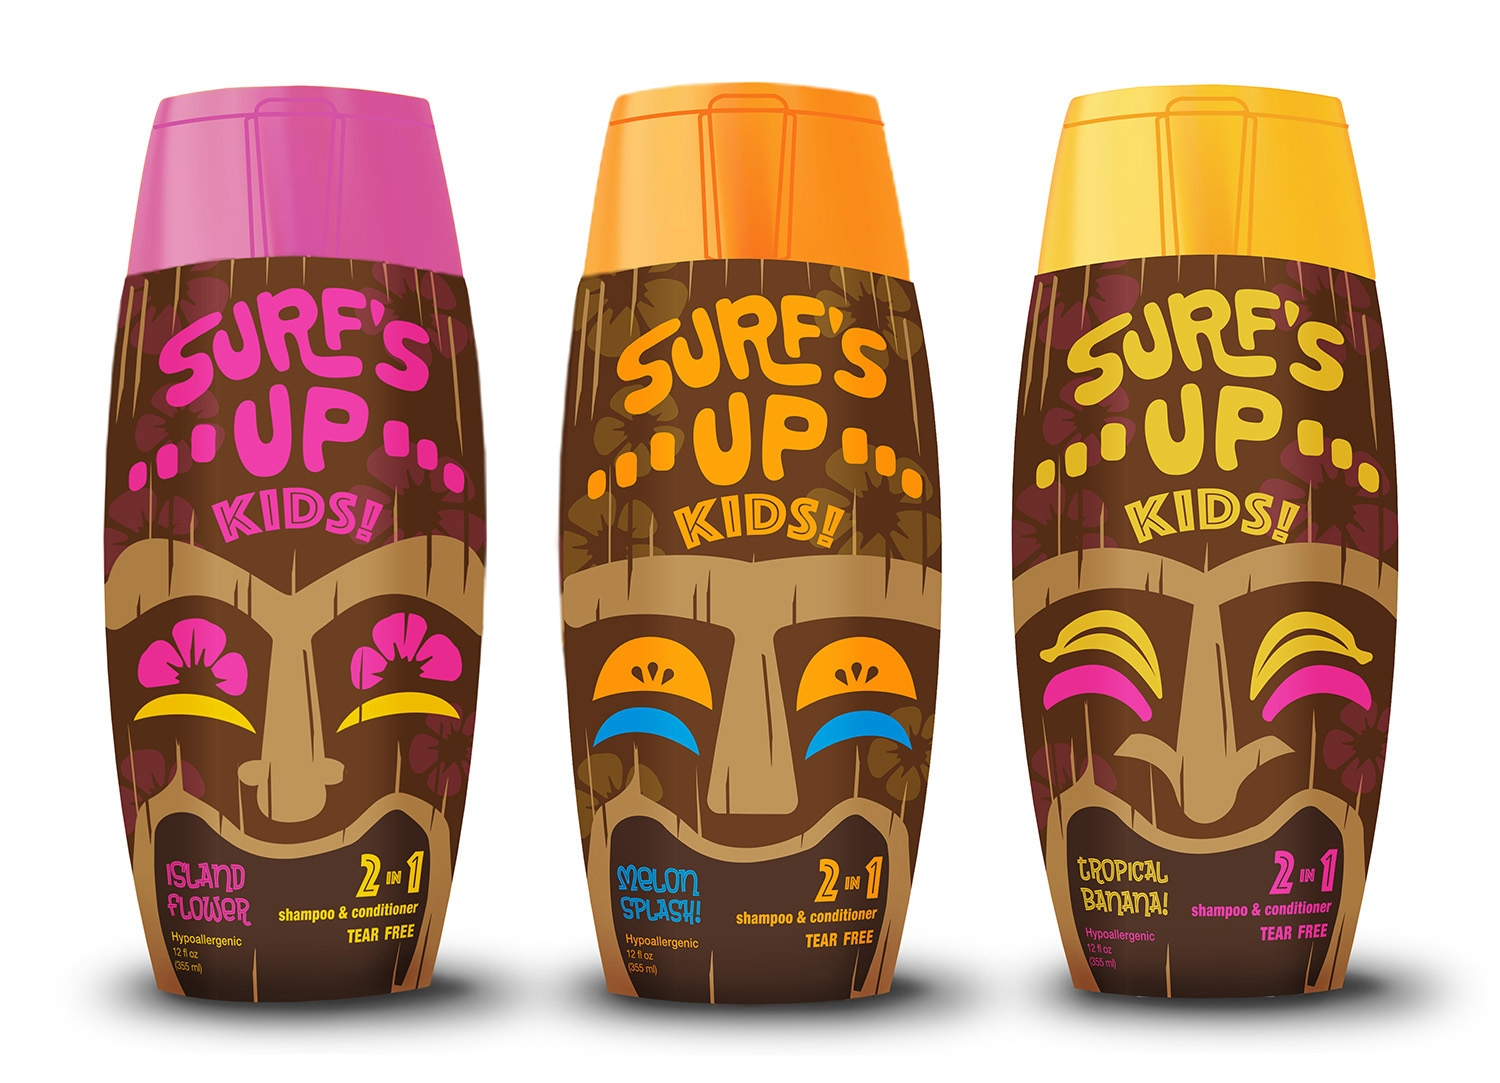 assets/uploads/entries//2016-1995_14Surfs_Up_Shampoo_1.jpg